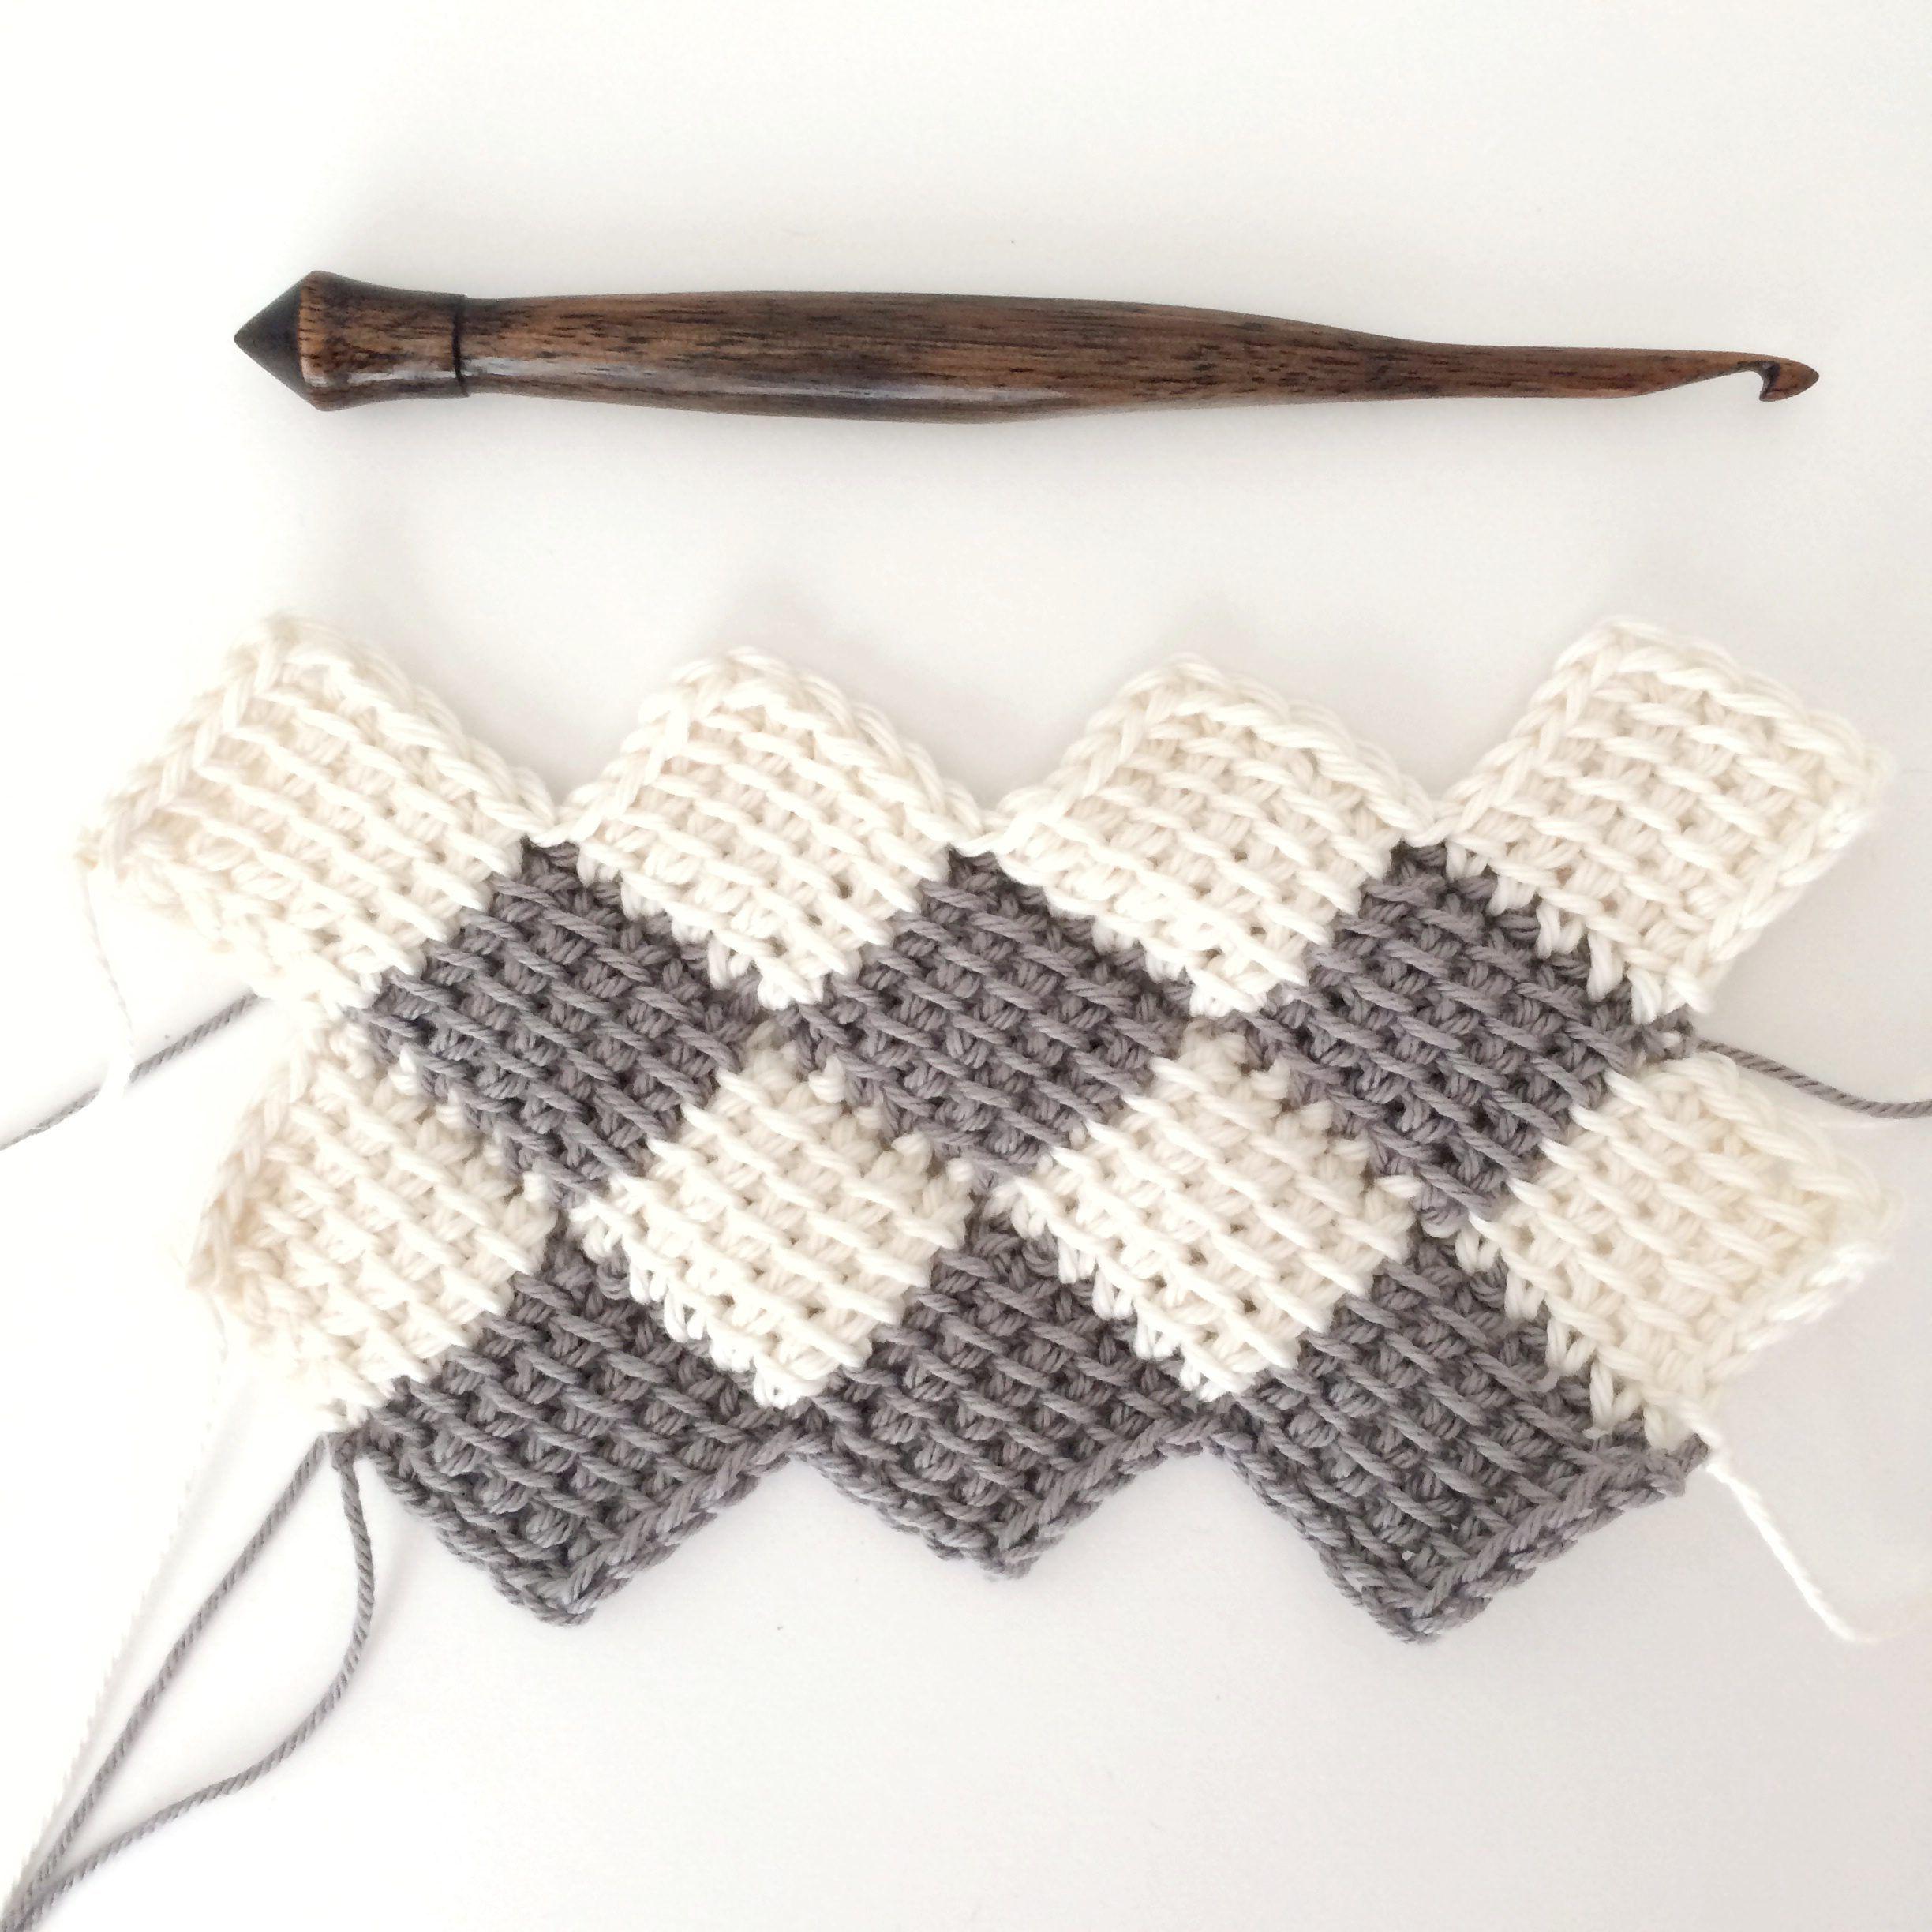 How to Use the Tunisian Entrelac Crochet Method | Crochet, Tunisian ...